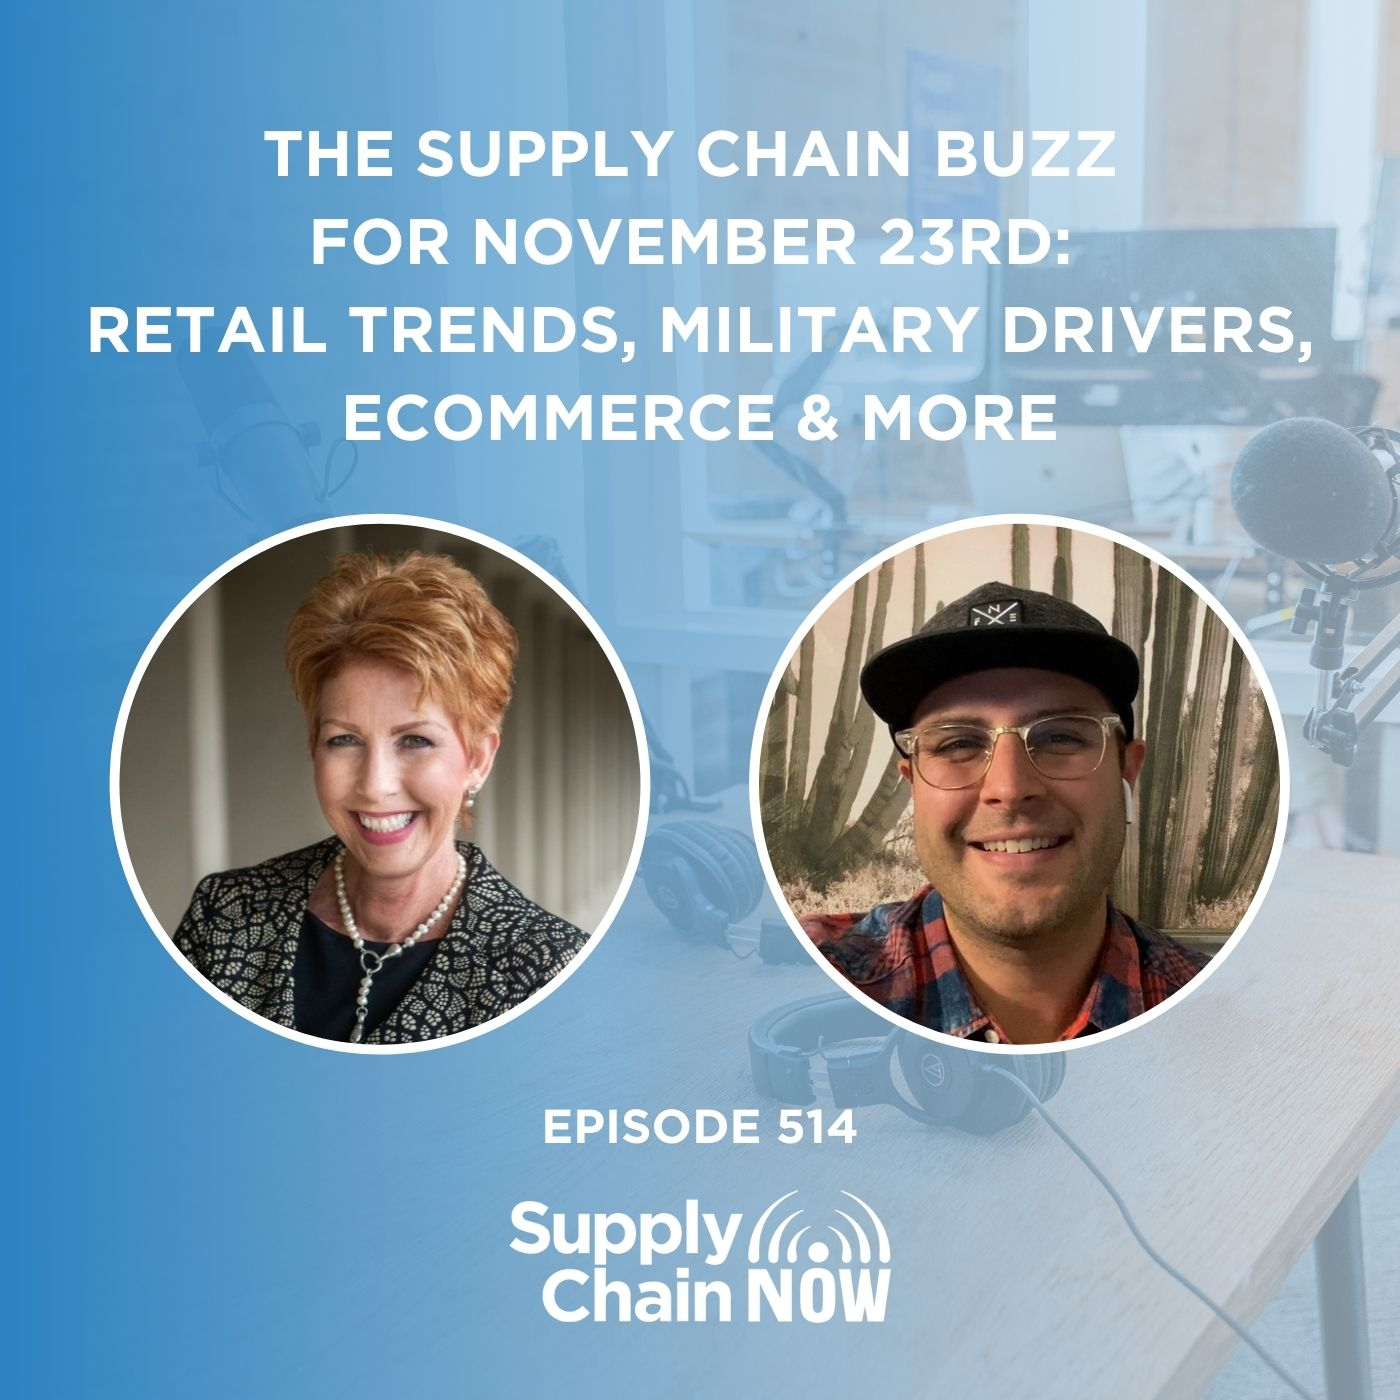 The Supply Chain Buzz for November 23rd: Retail Trends, Military Drivers, eCommerce, & More